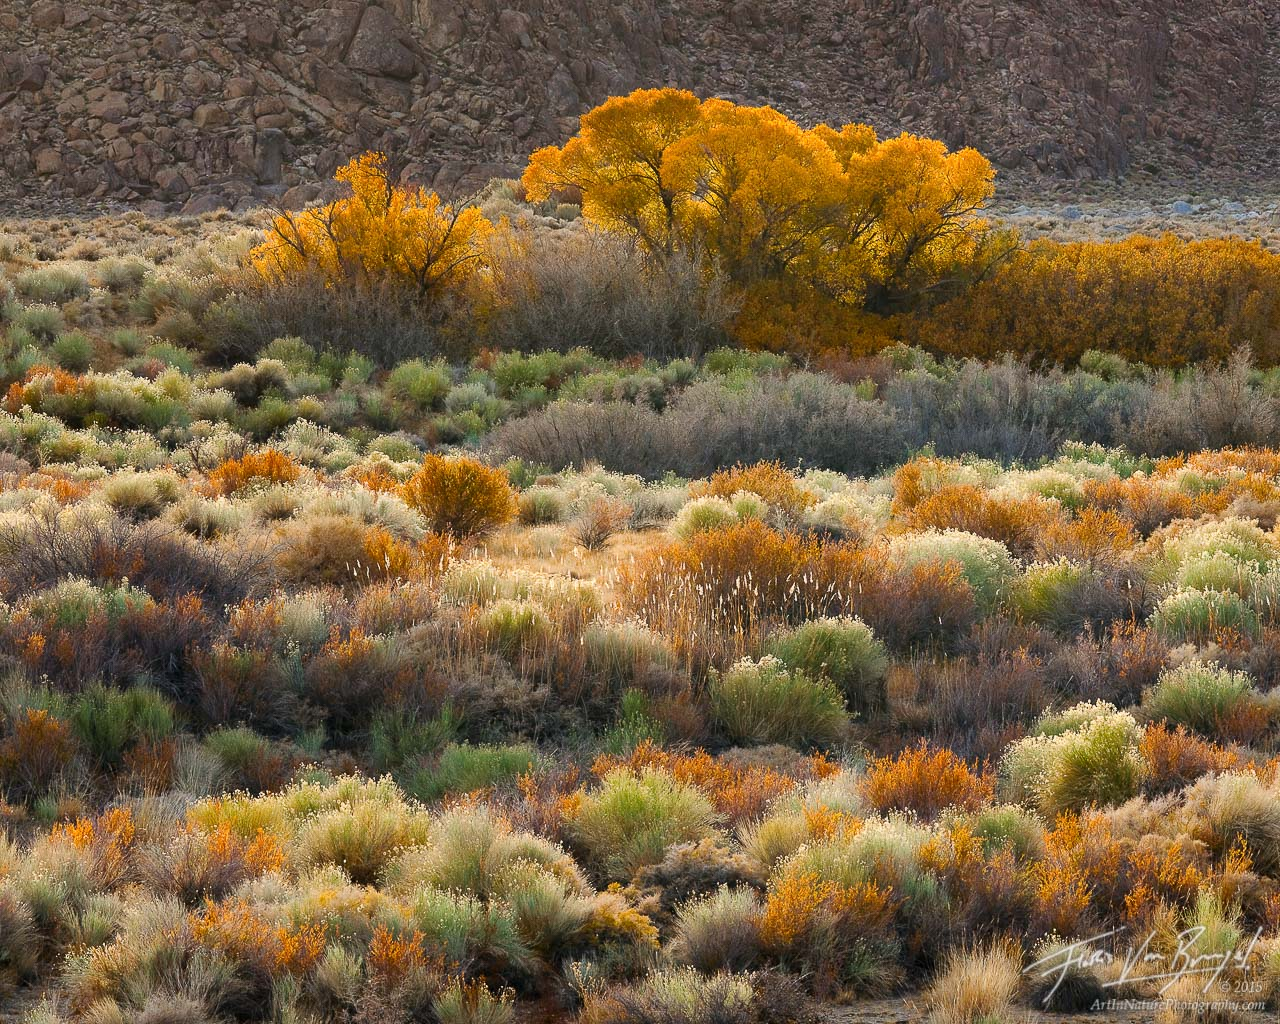 Alabama Hills Fall Foliage, Owens Valley, California, flames of fall, photo